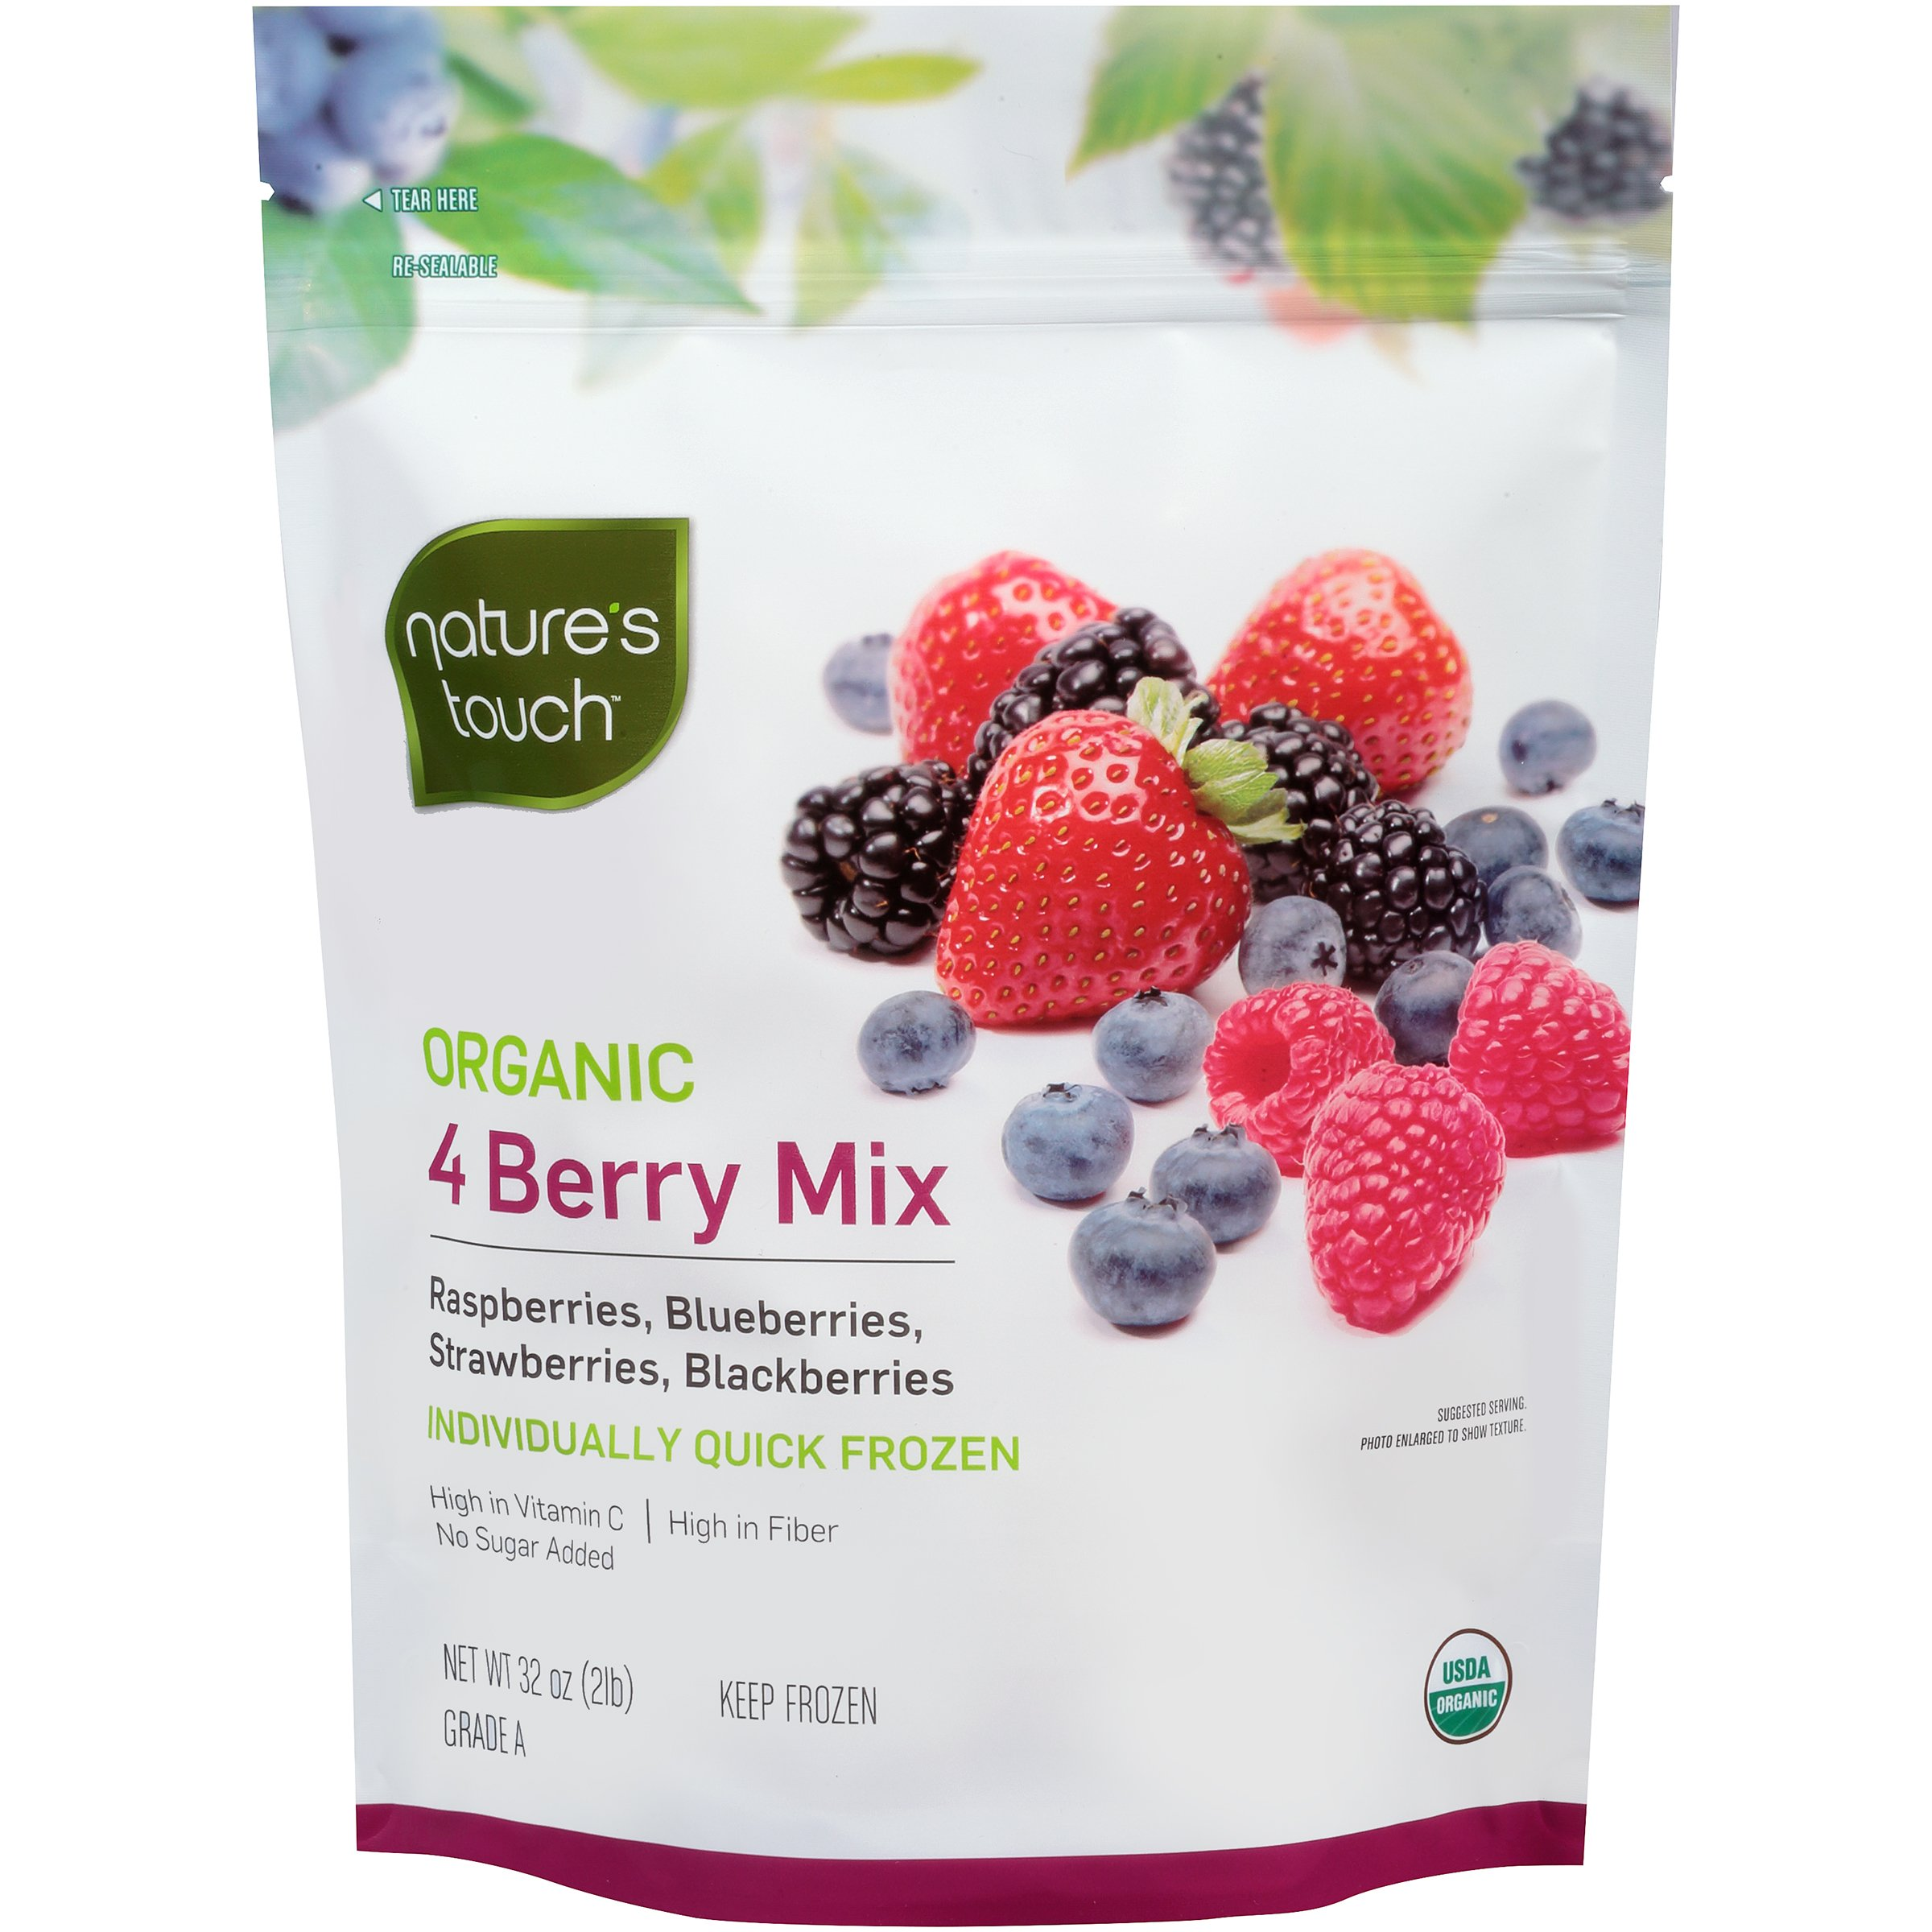 Nature's Touch Organic Fruit, 4 Berry Mix 32 oz. (6 Count)